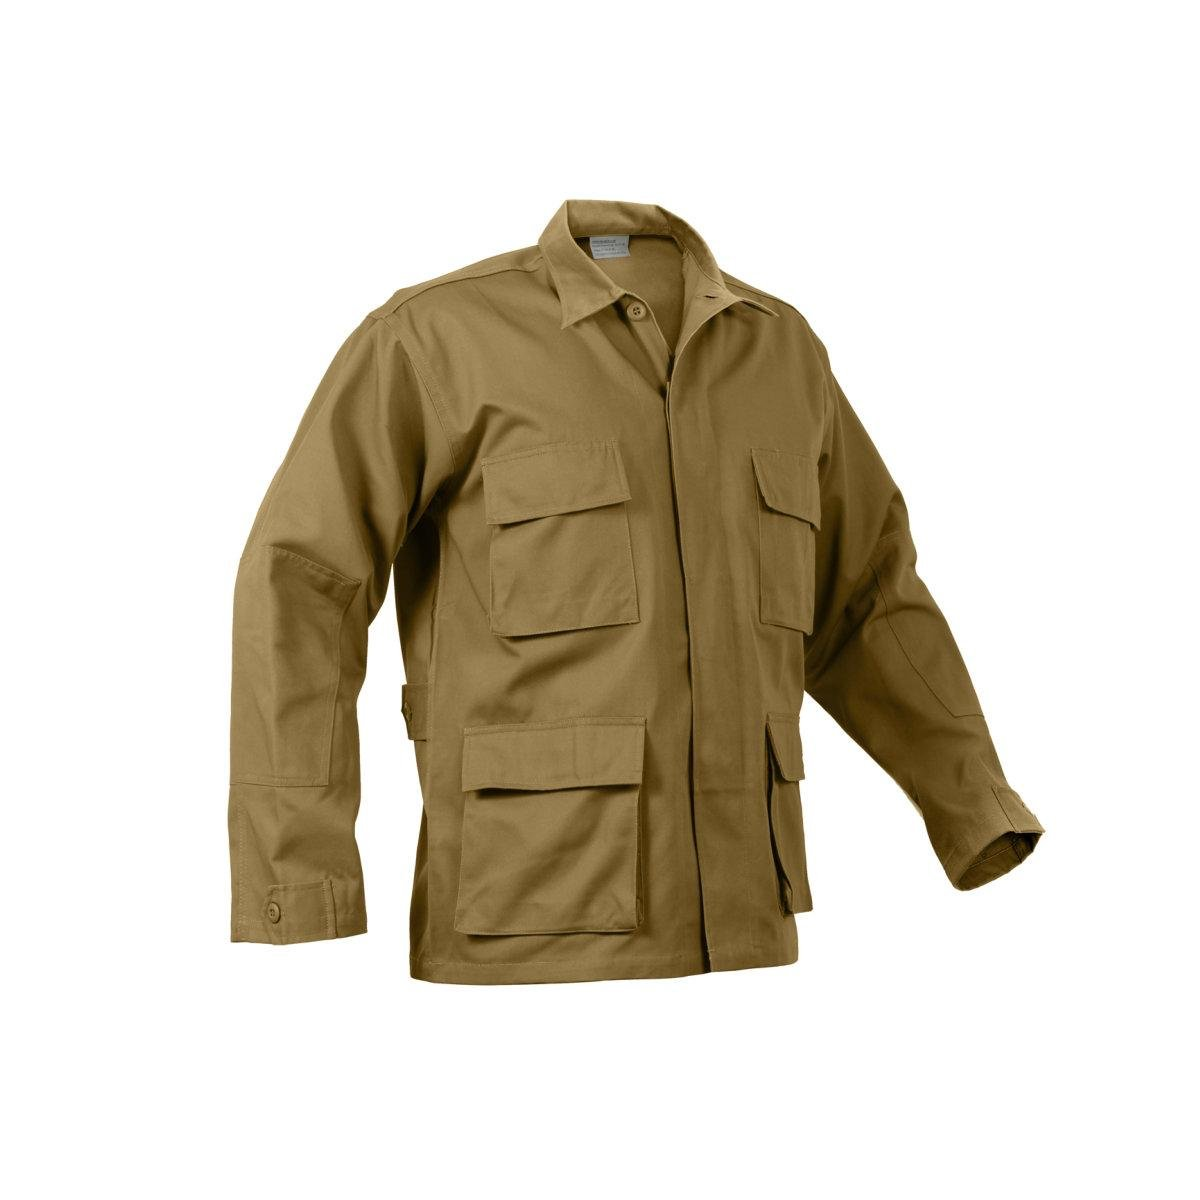 Rothco Bdu Shirt, Coyote, Large by Rothco